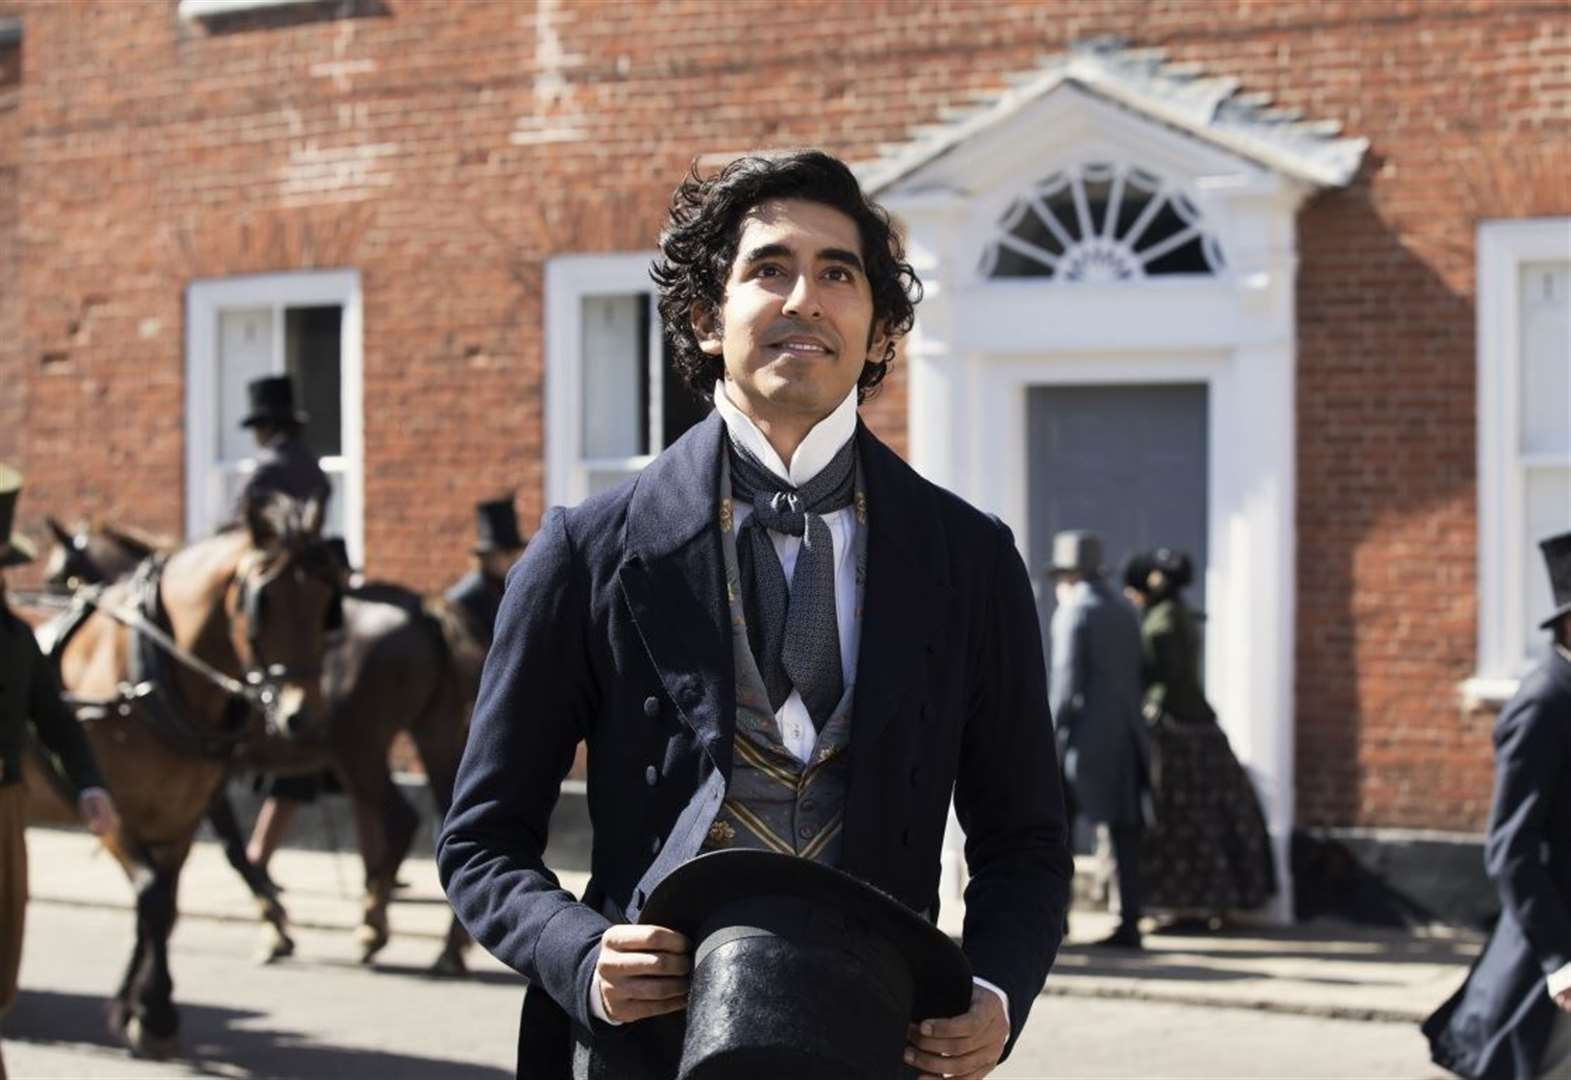 Dickens' David Copperfield brought to life